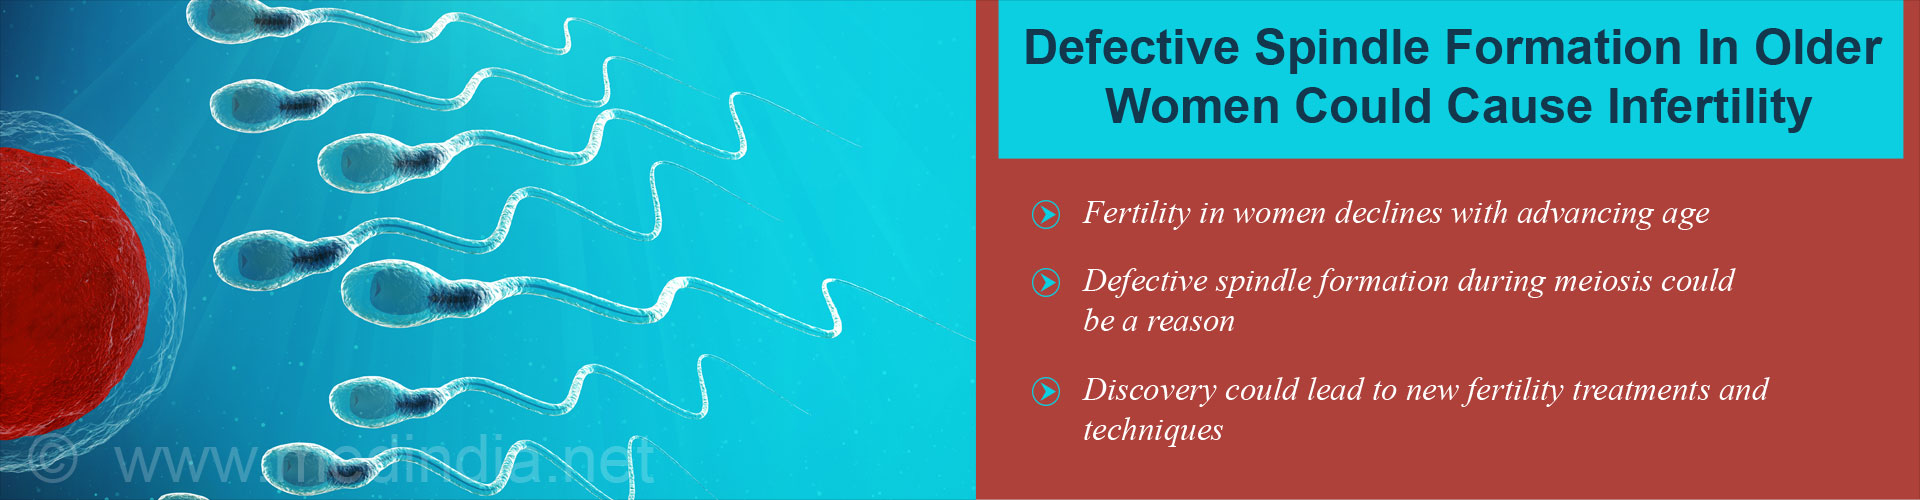 Why Does Infertility Increase in Older Women?